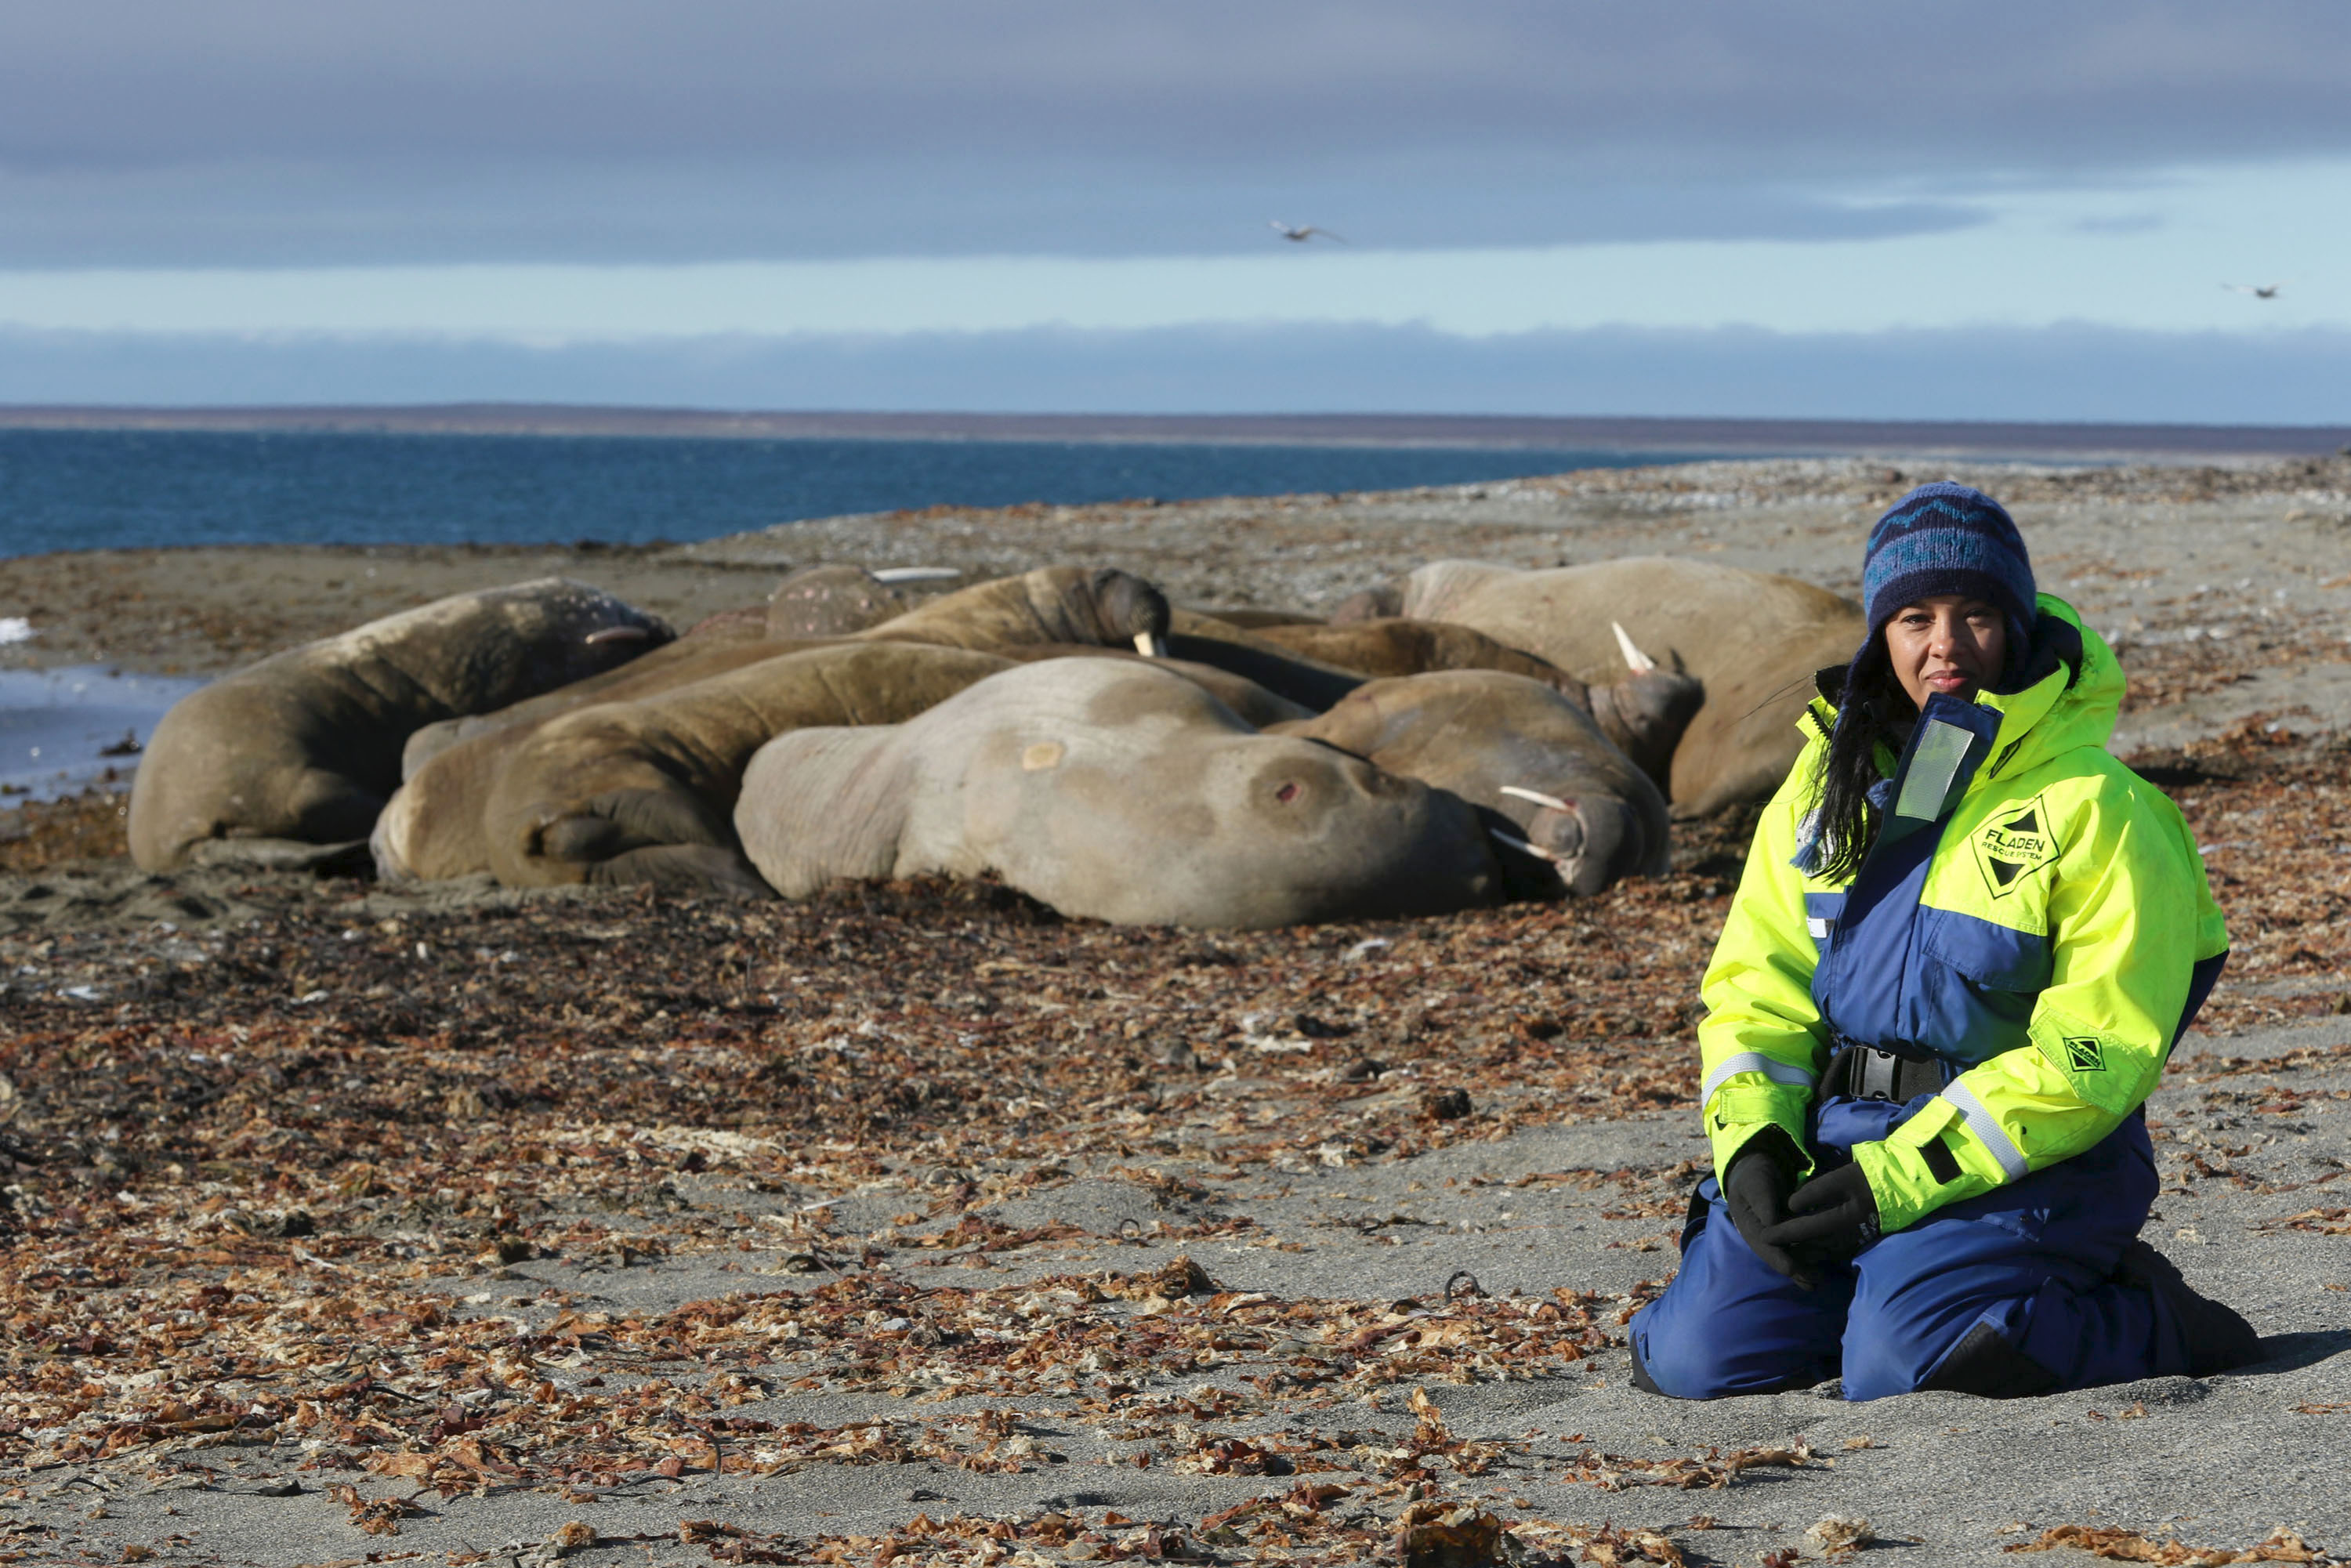 Liz Bonnin with walruses in Svalbard, filming for Drowning in Plastic. (BBC/Raw TV Ltd/ Alisdair Livingstone/PA)